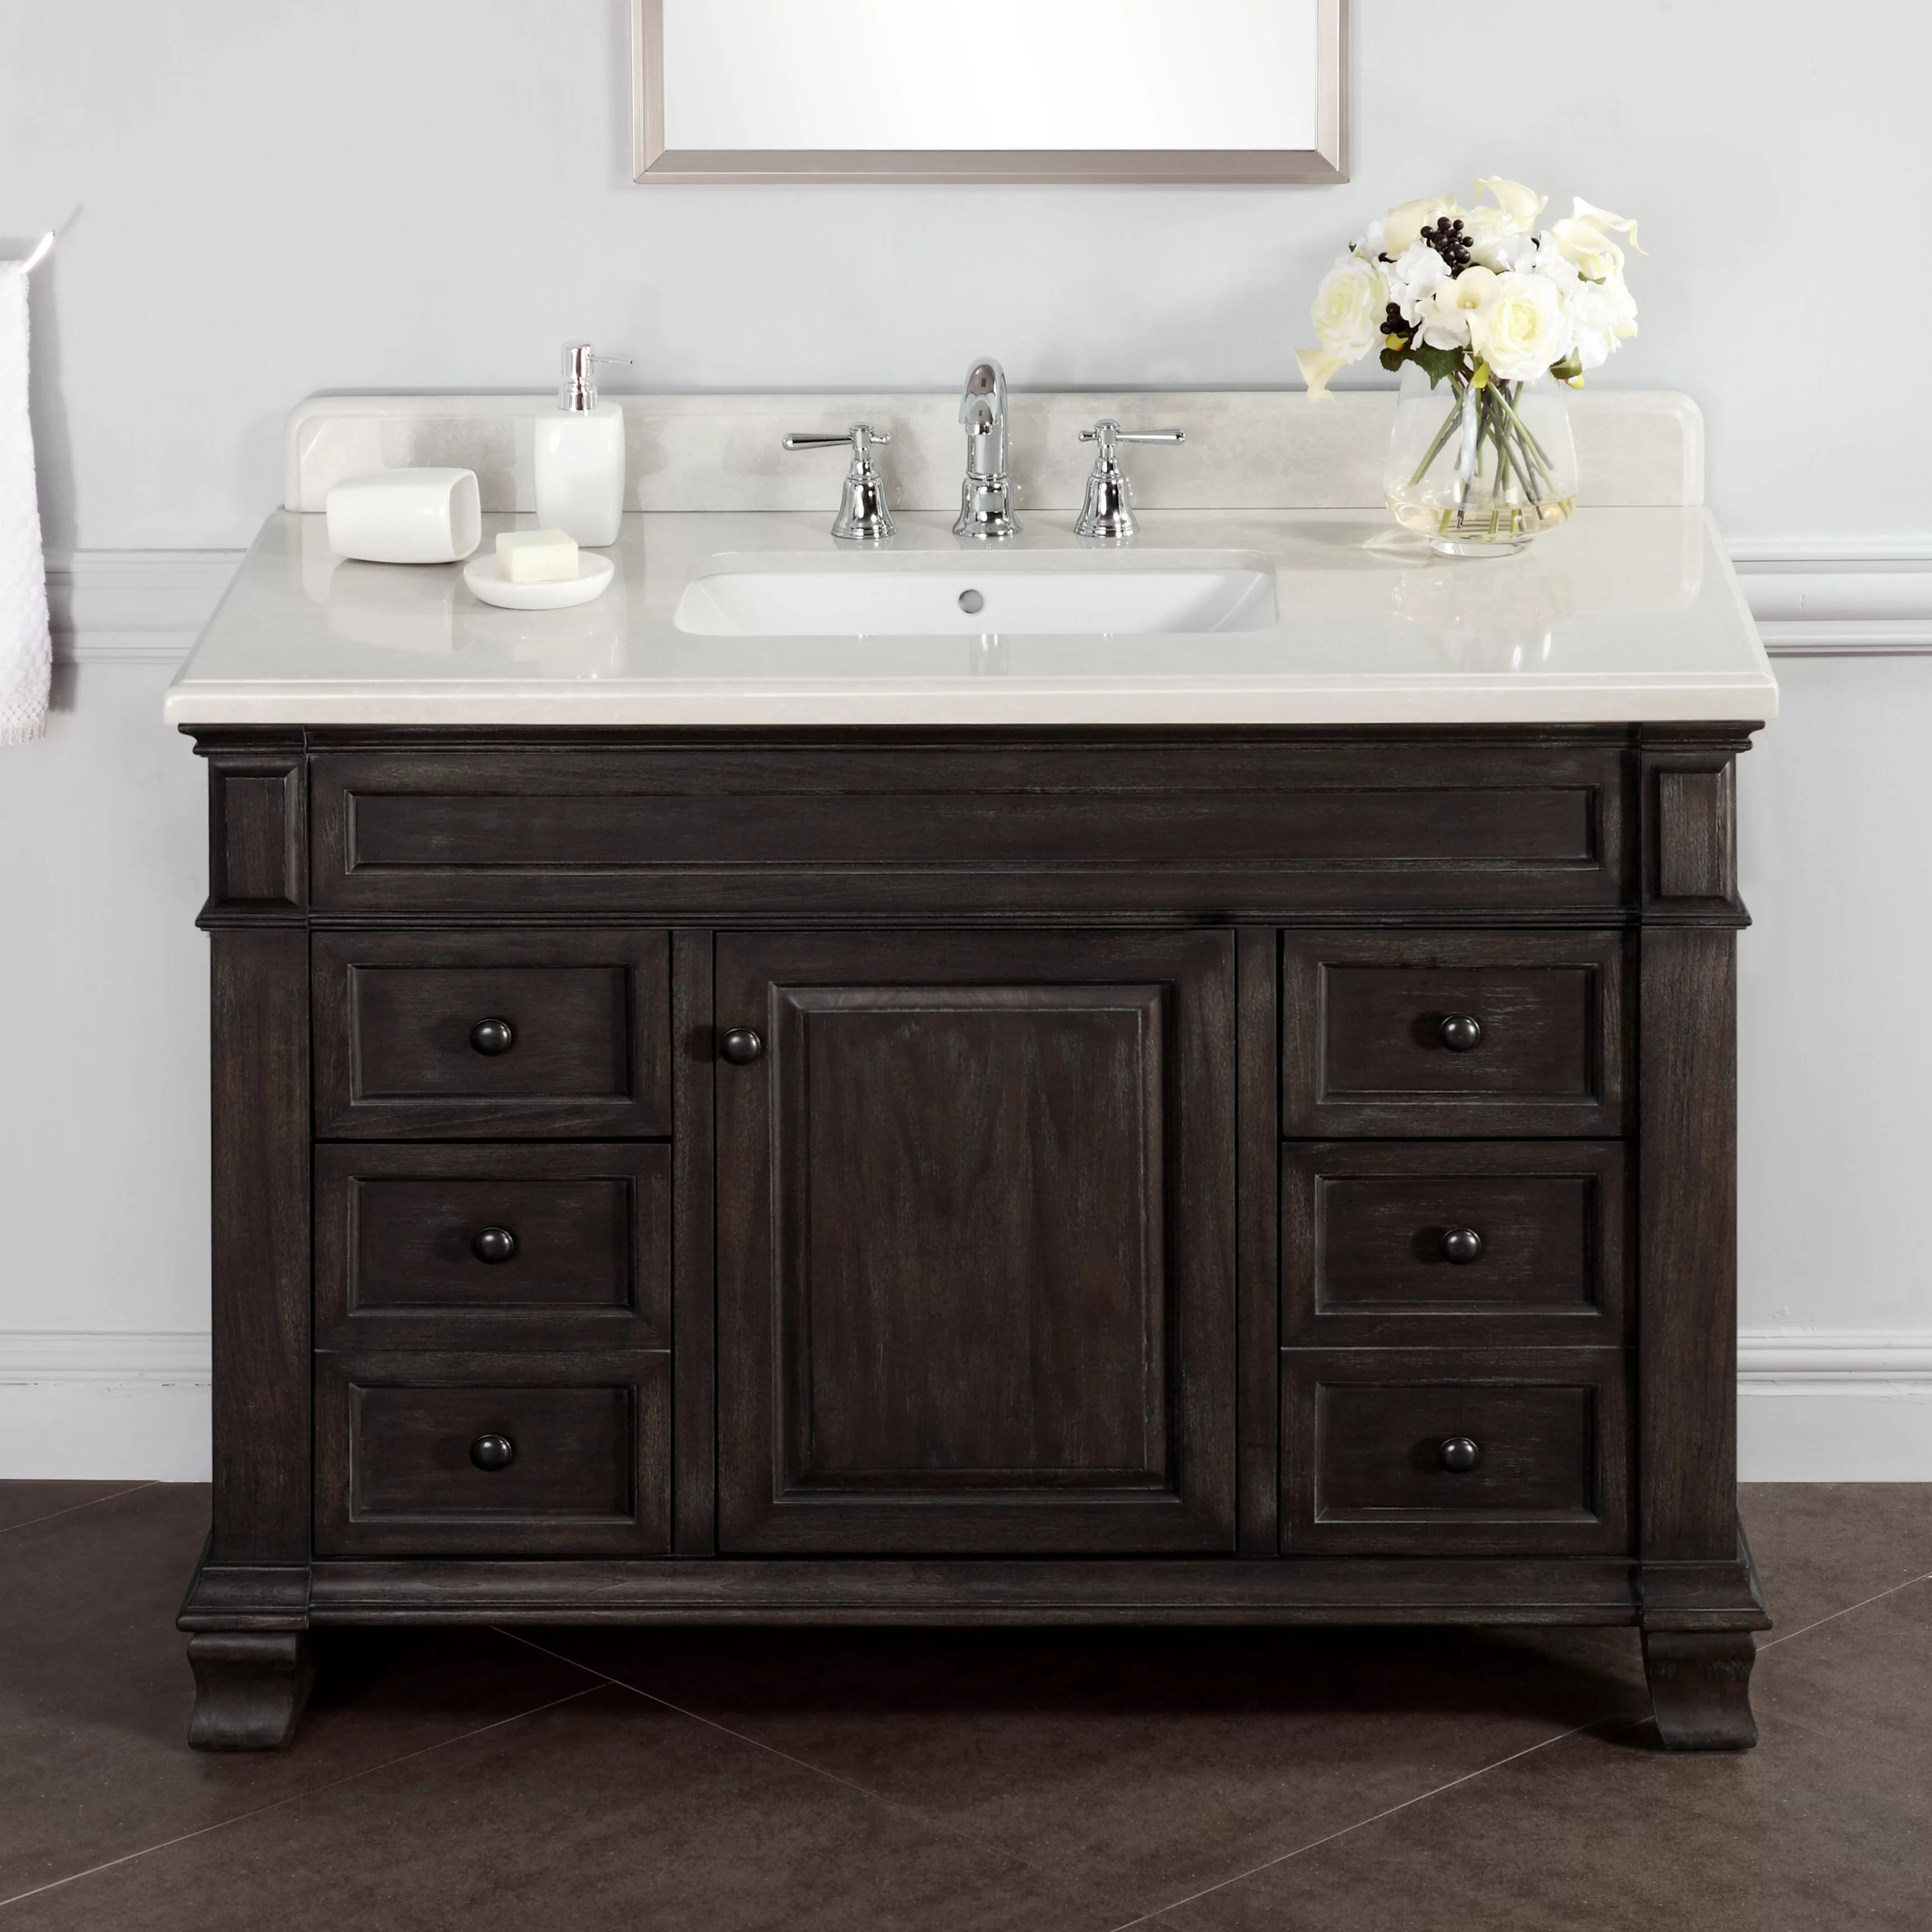 Lanza Kingsley 48 Single Bathroom Vanity Set  Reviews